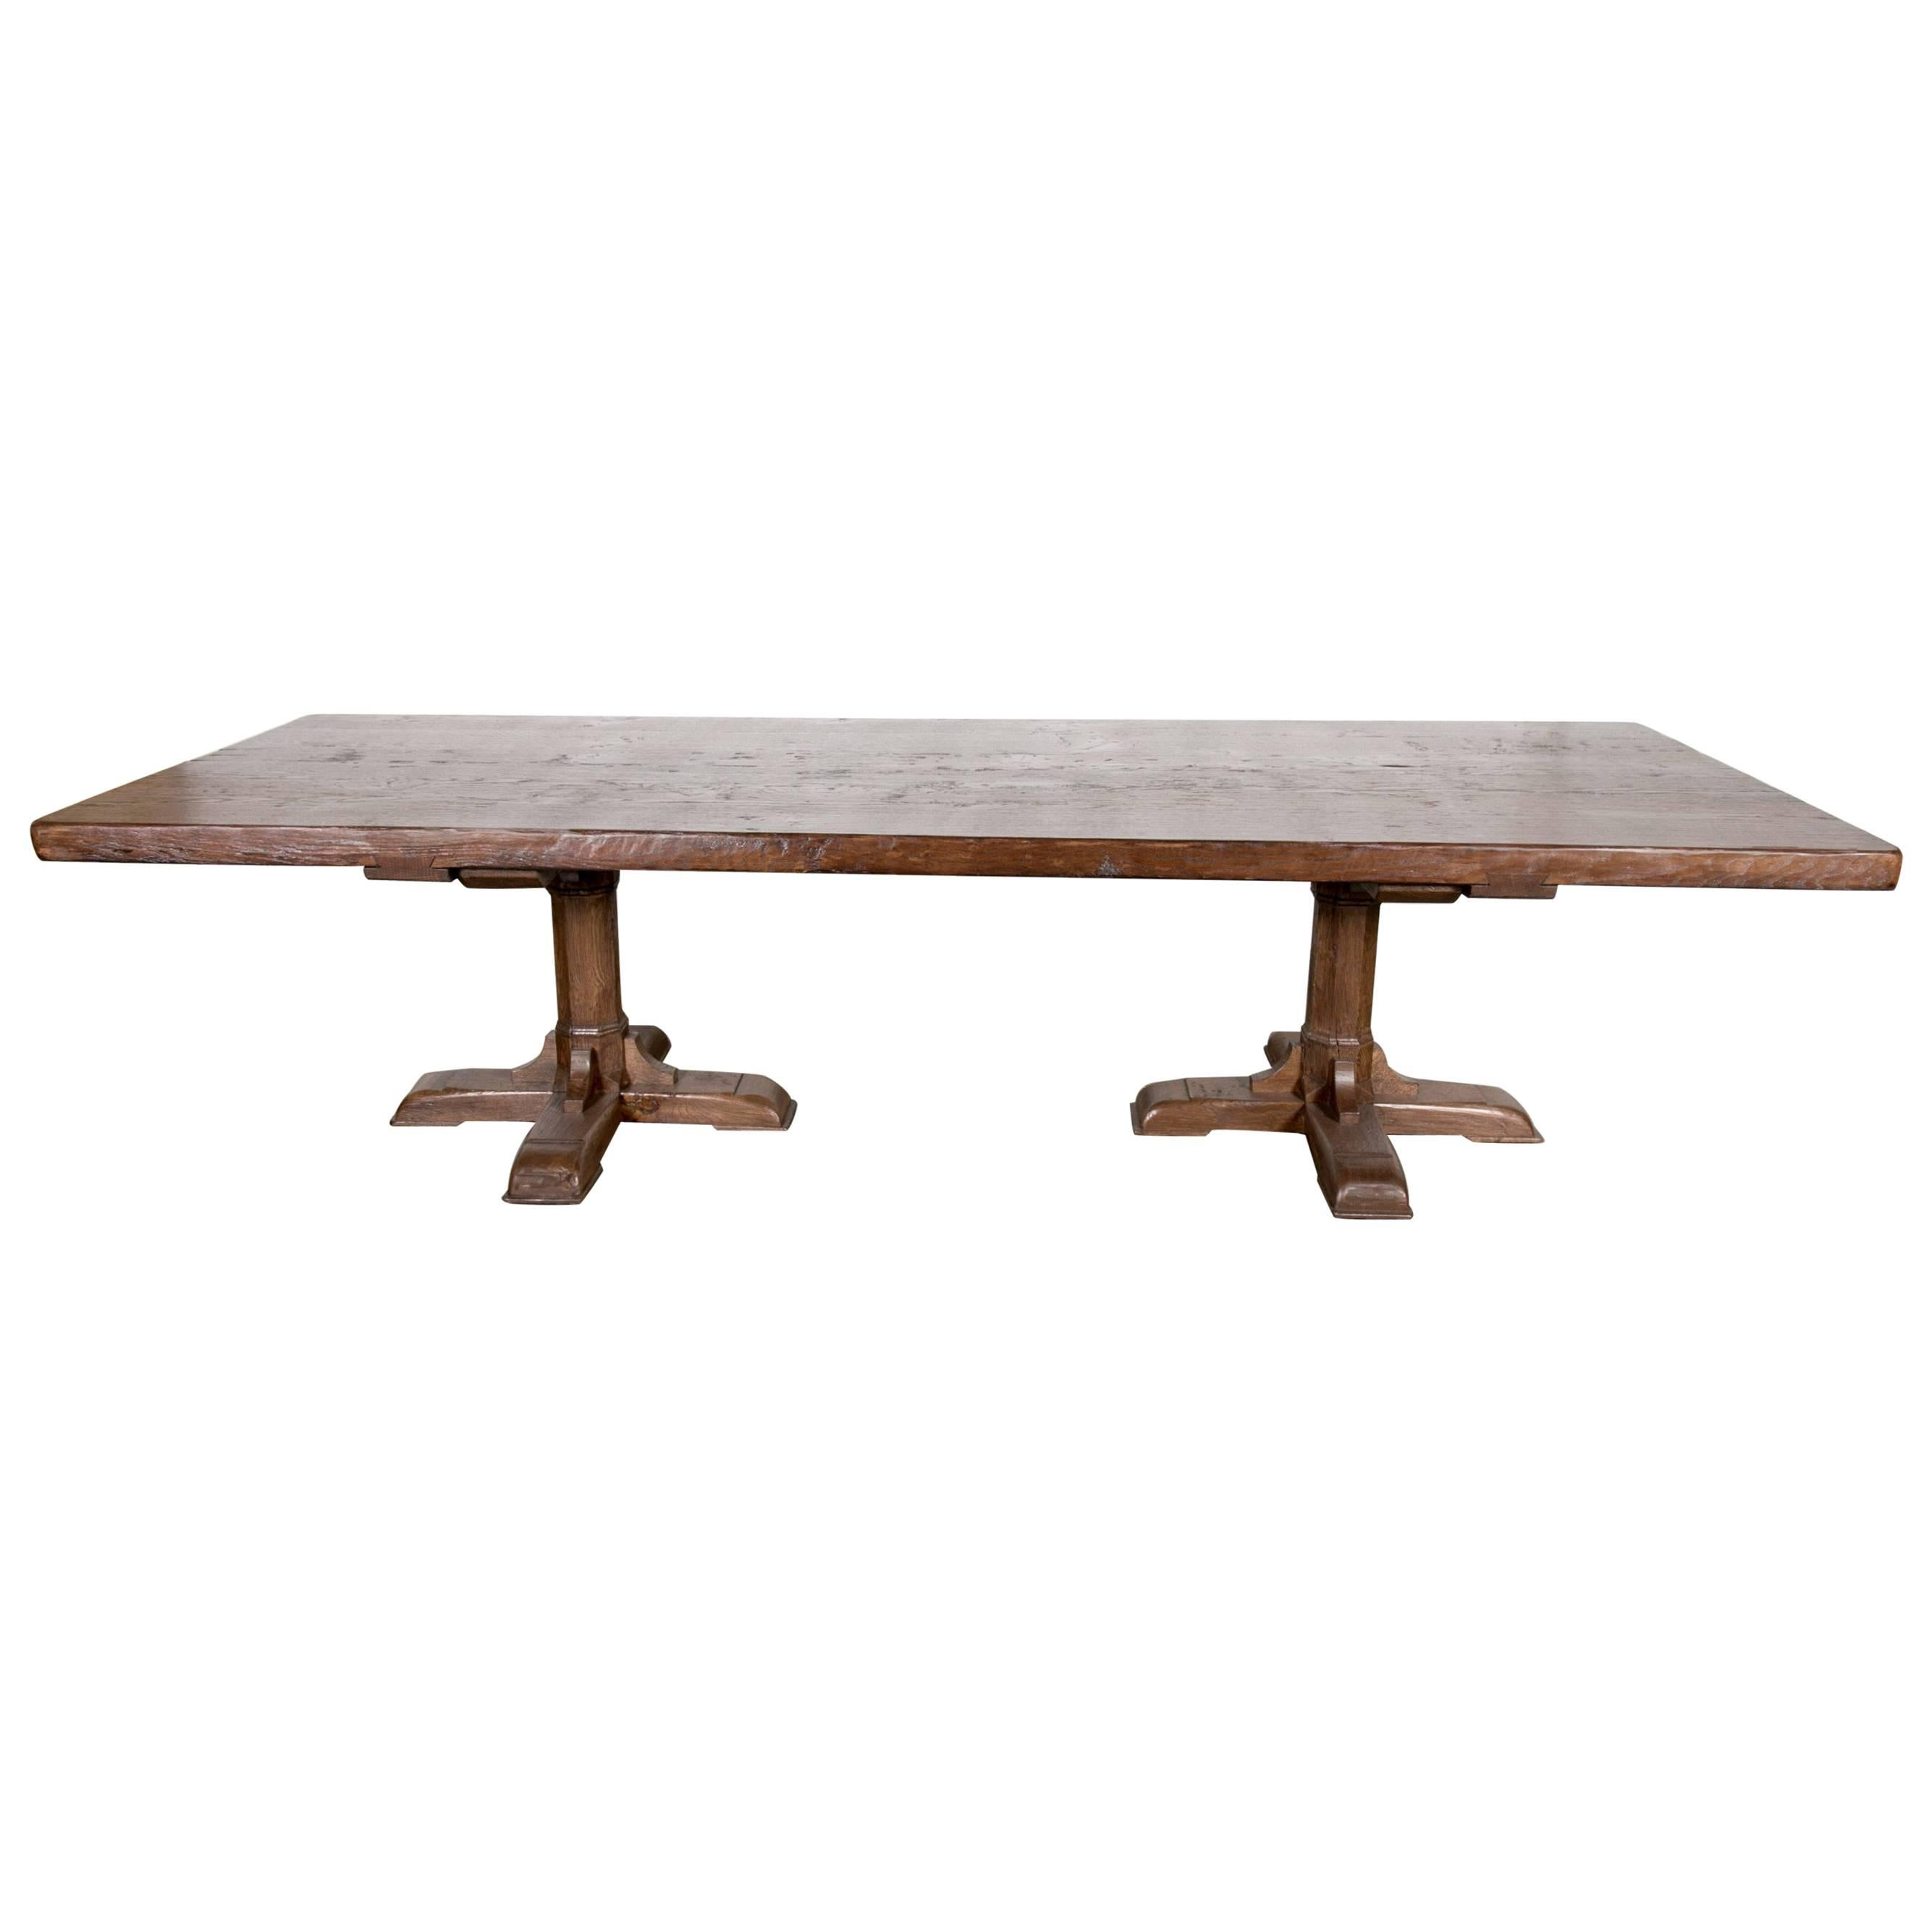 Custom 10 Foot French Farmhouse Table Made From Imported French Oak For Sale